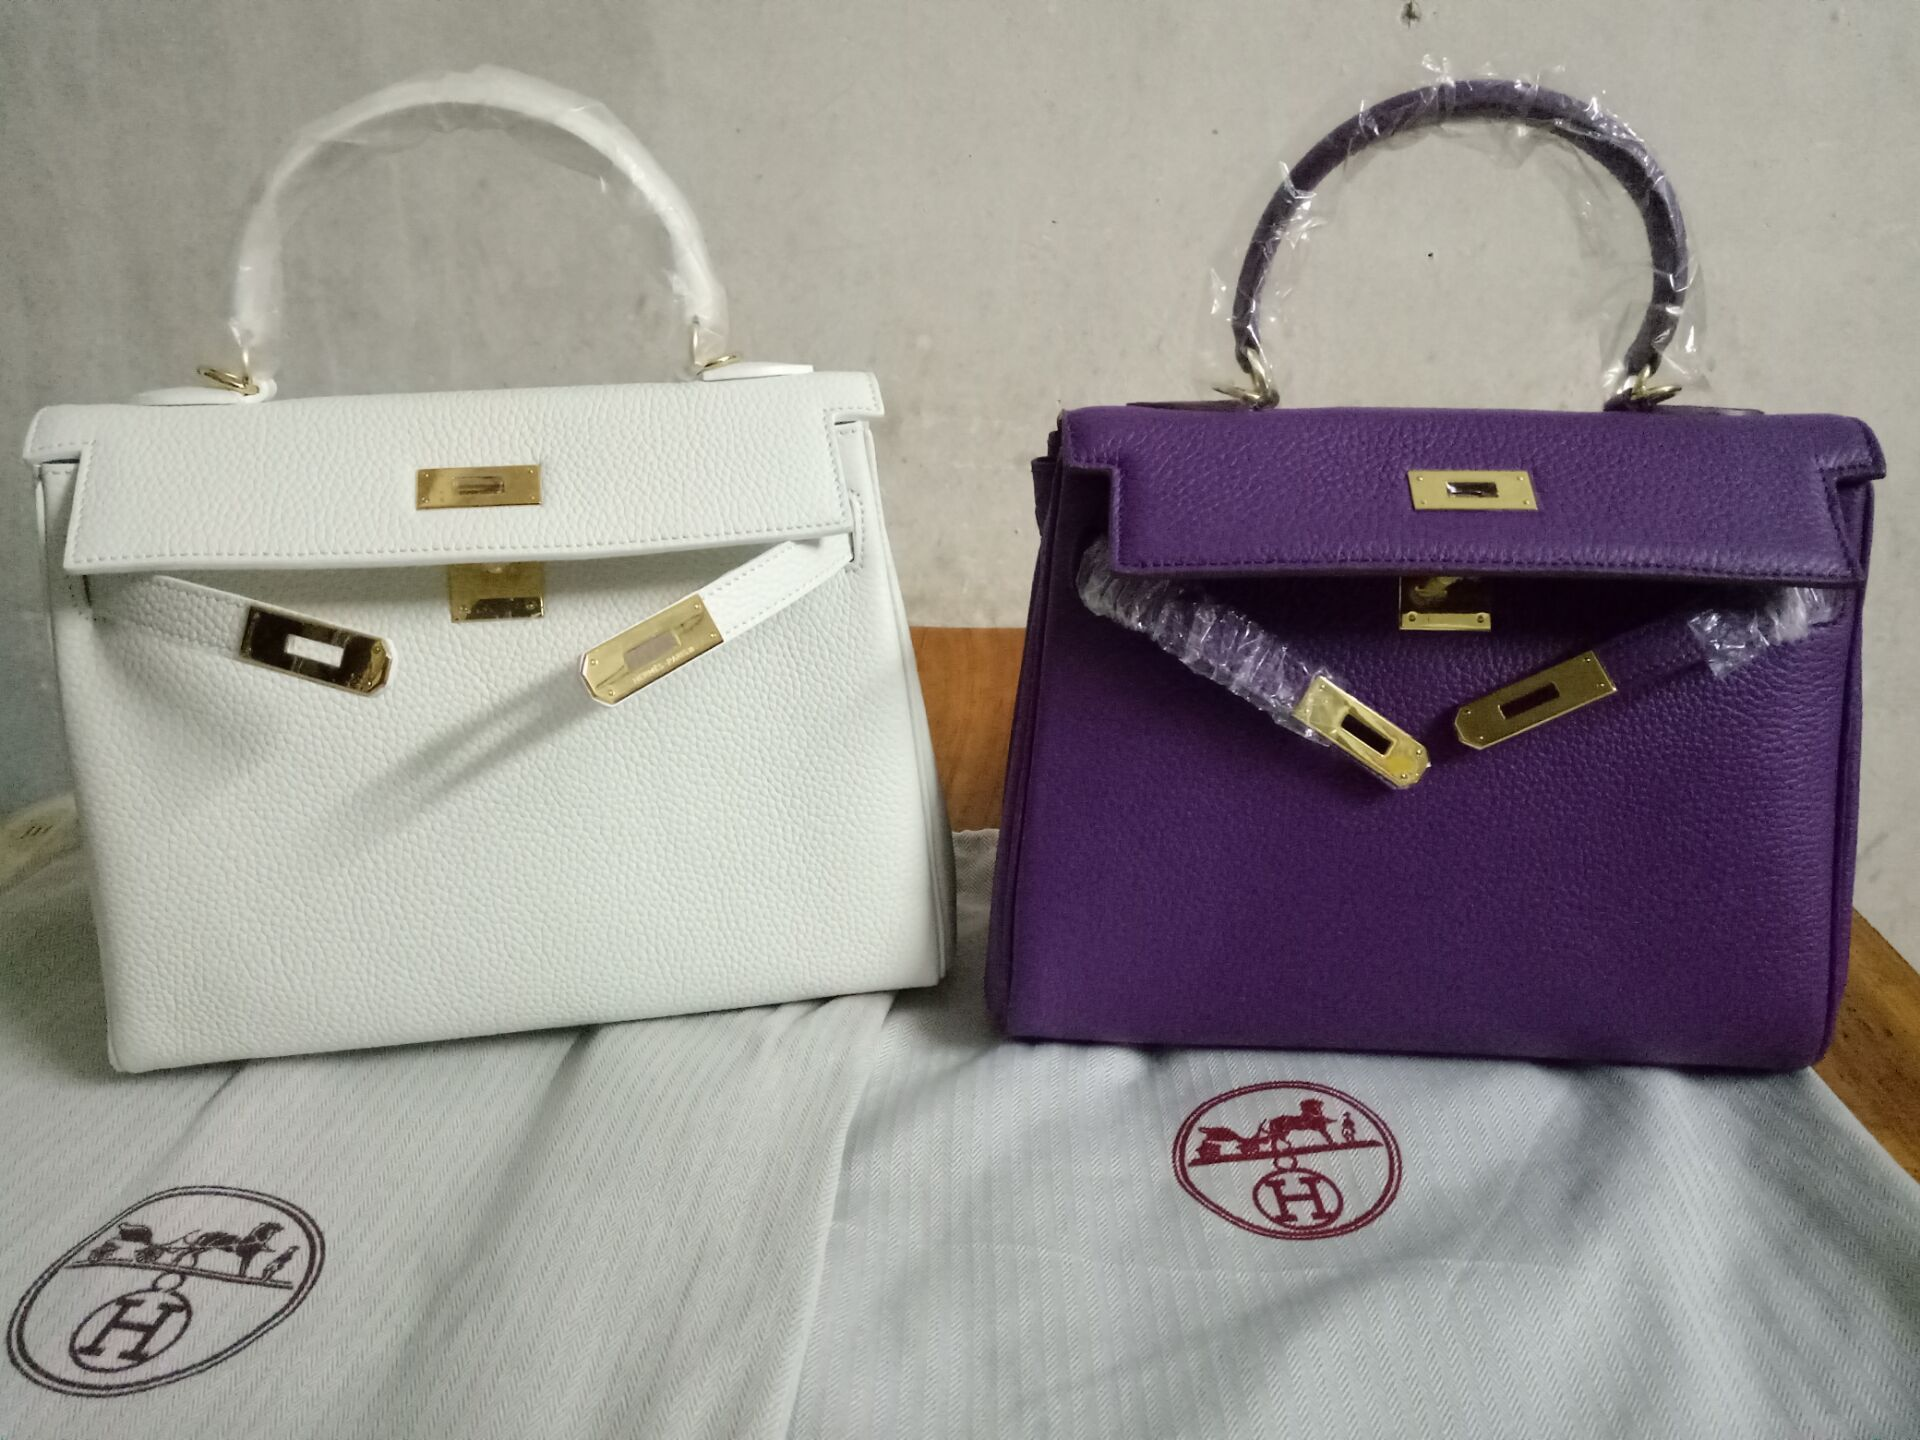 My Oline Dhgate Hermes Kelly Have Size 32cm 28cm Silver And Gold Buckle